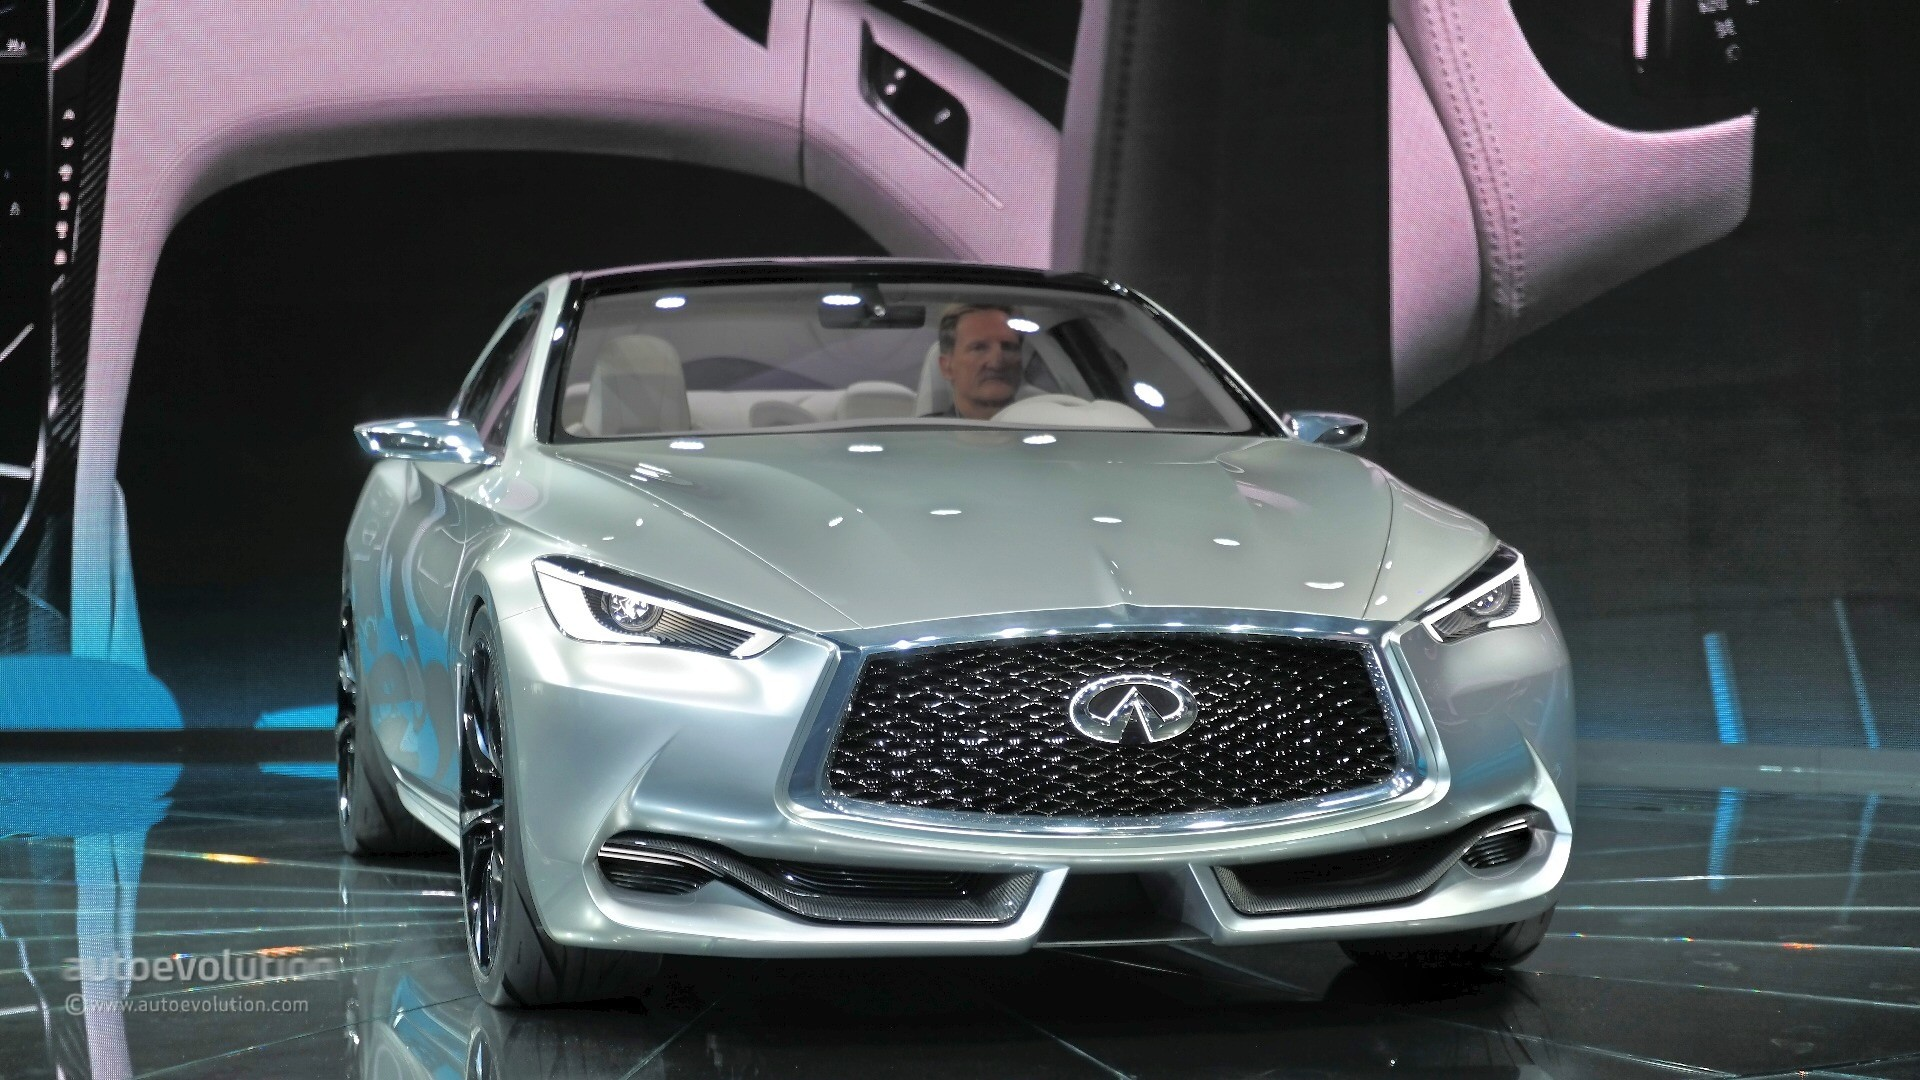 100 ideas infiniti concept coupe on evadete infiniti q60 concept previews 2016 production coupe in detroit vanachro Image collections